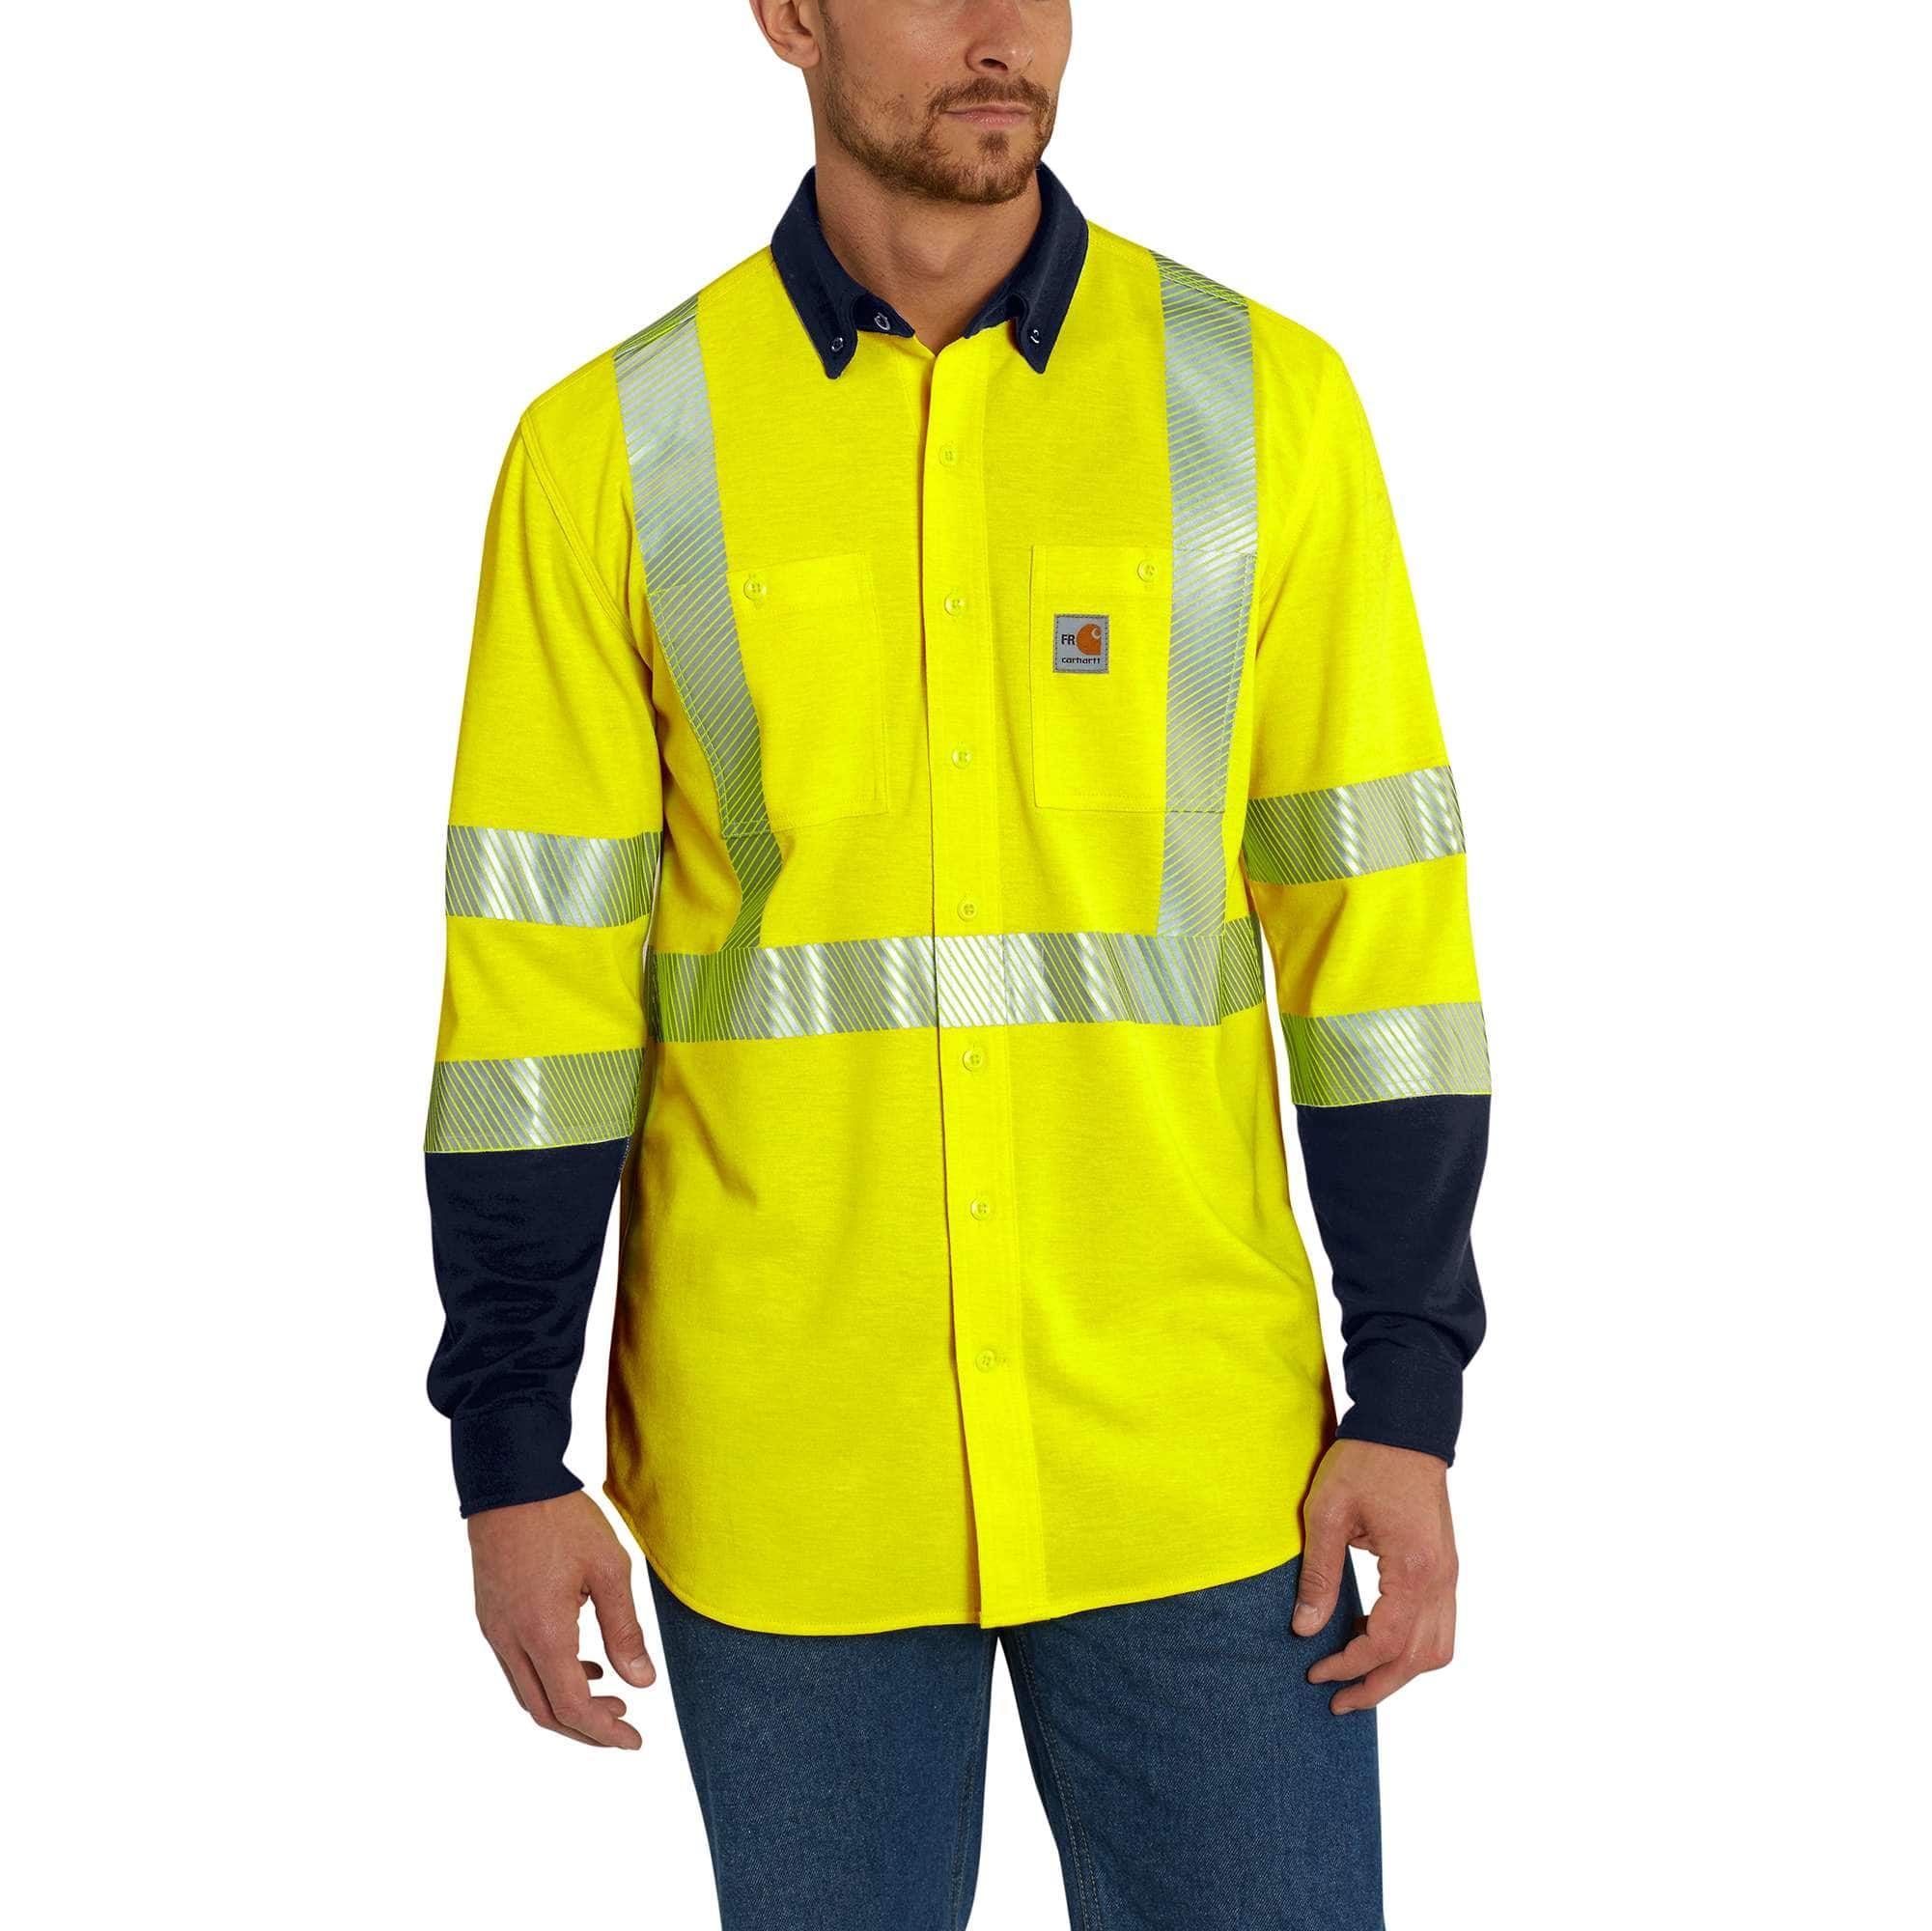 12336f791a54 Add to Wishlist. Share This Item. EMAIL · Find in Store. PRODUCT FEATURES   PRODUCT CARE. Men s high-visibility shirt that s flame-resistant ...